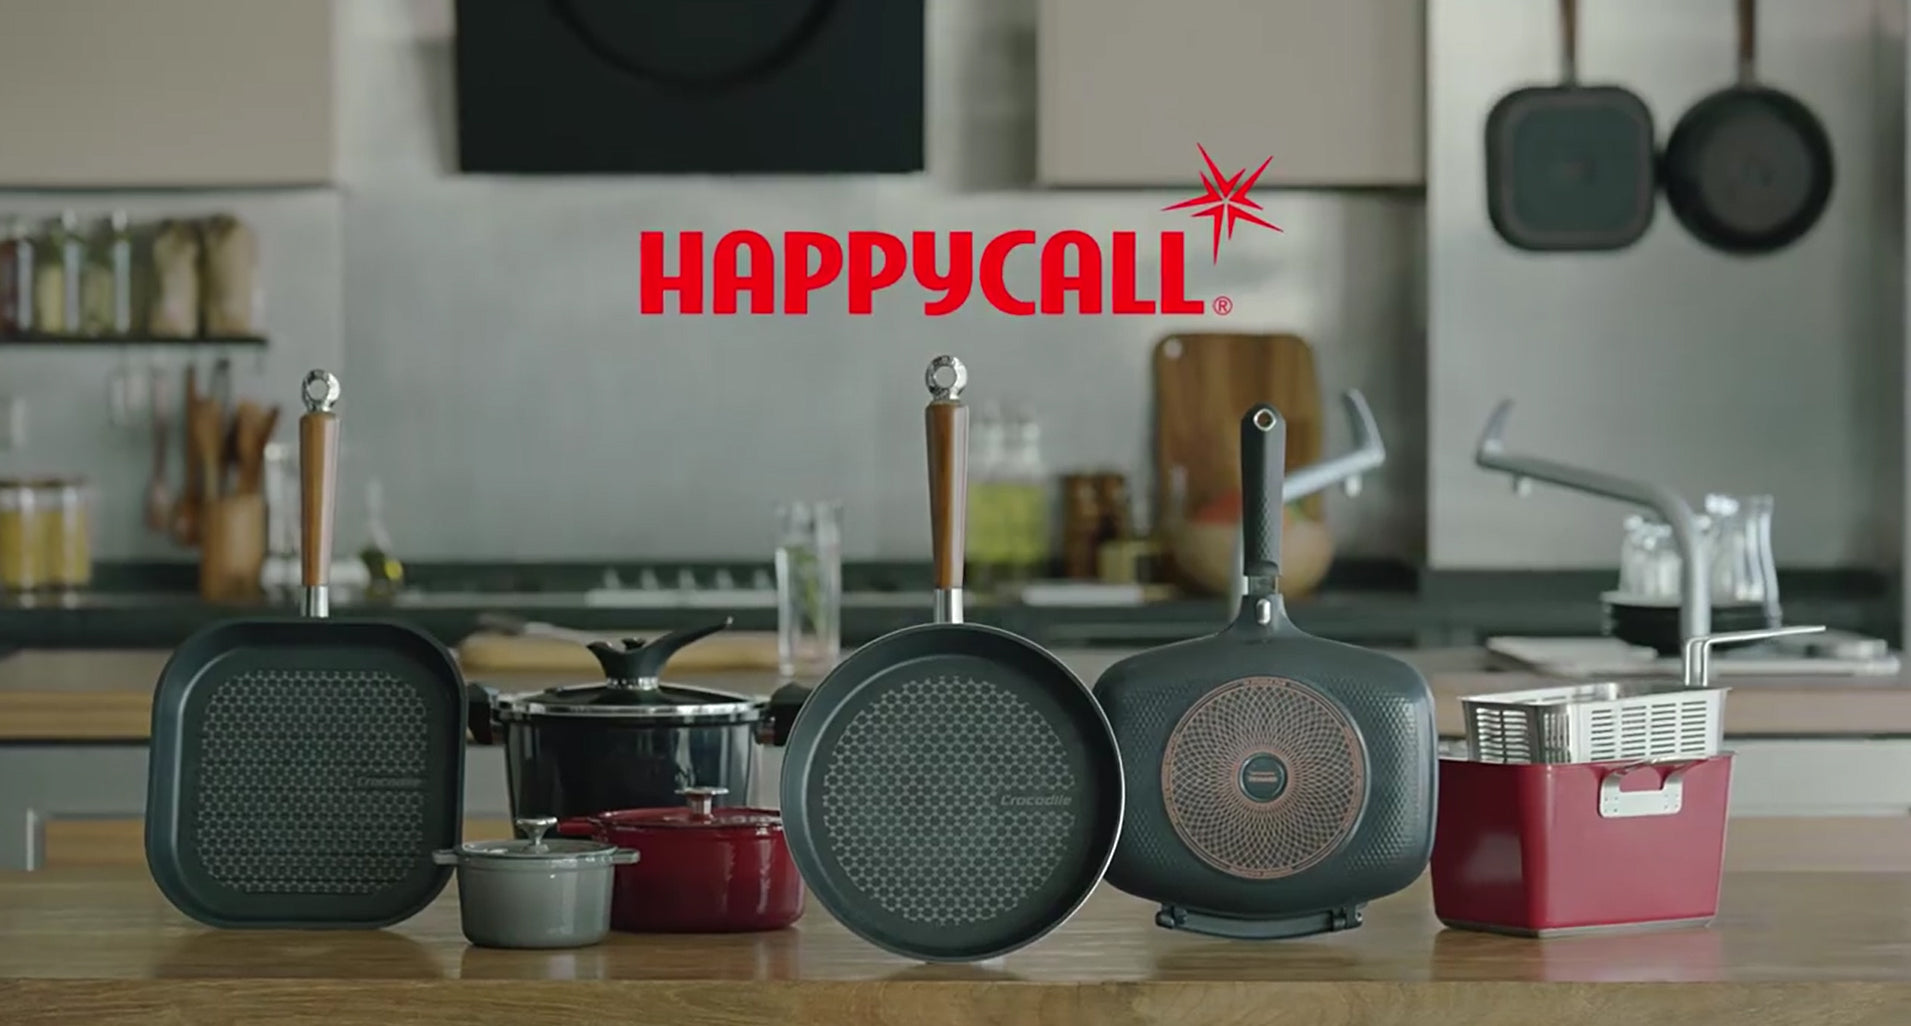 2018 new exciting Happycall products coming soon!